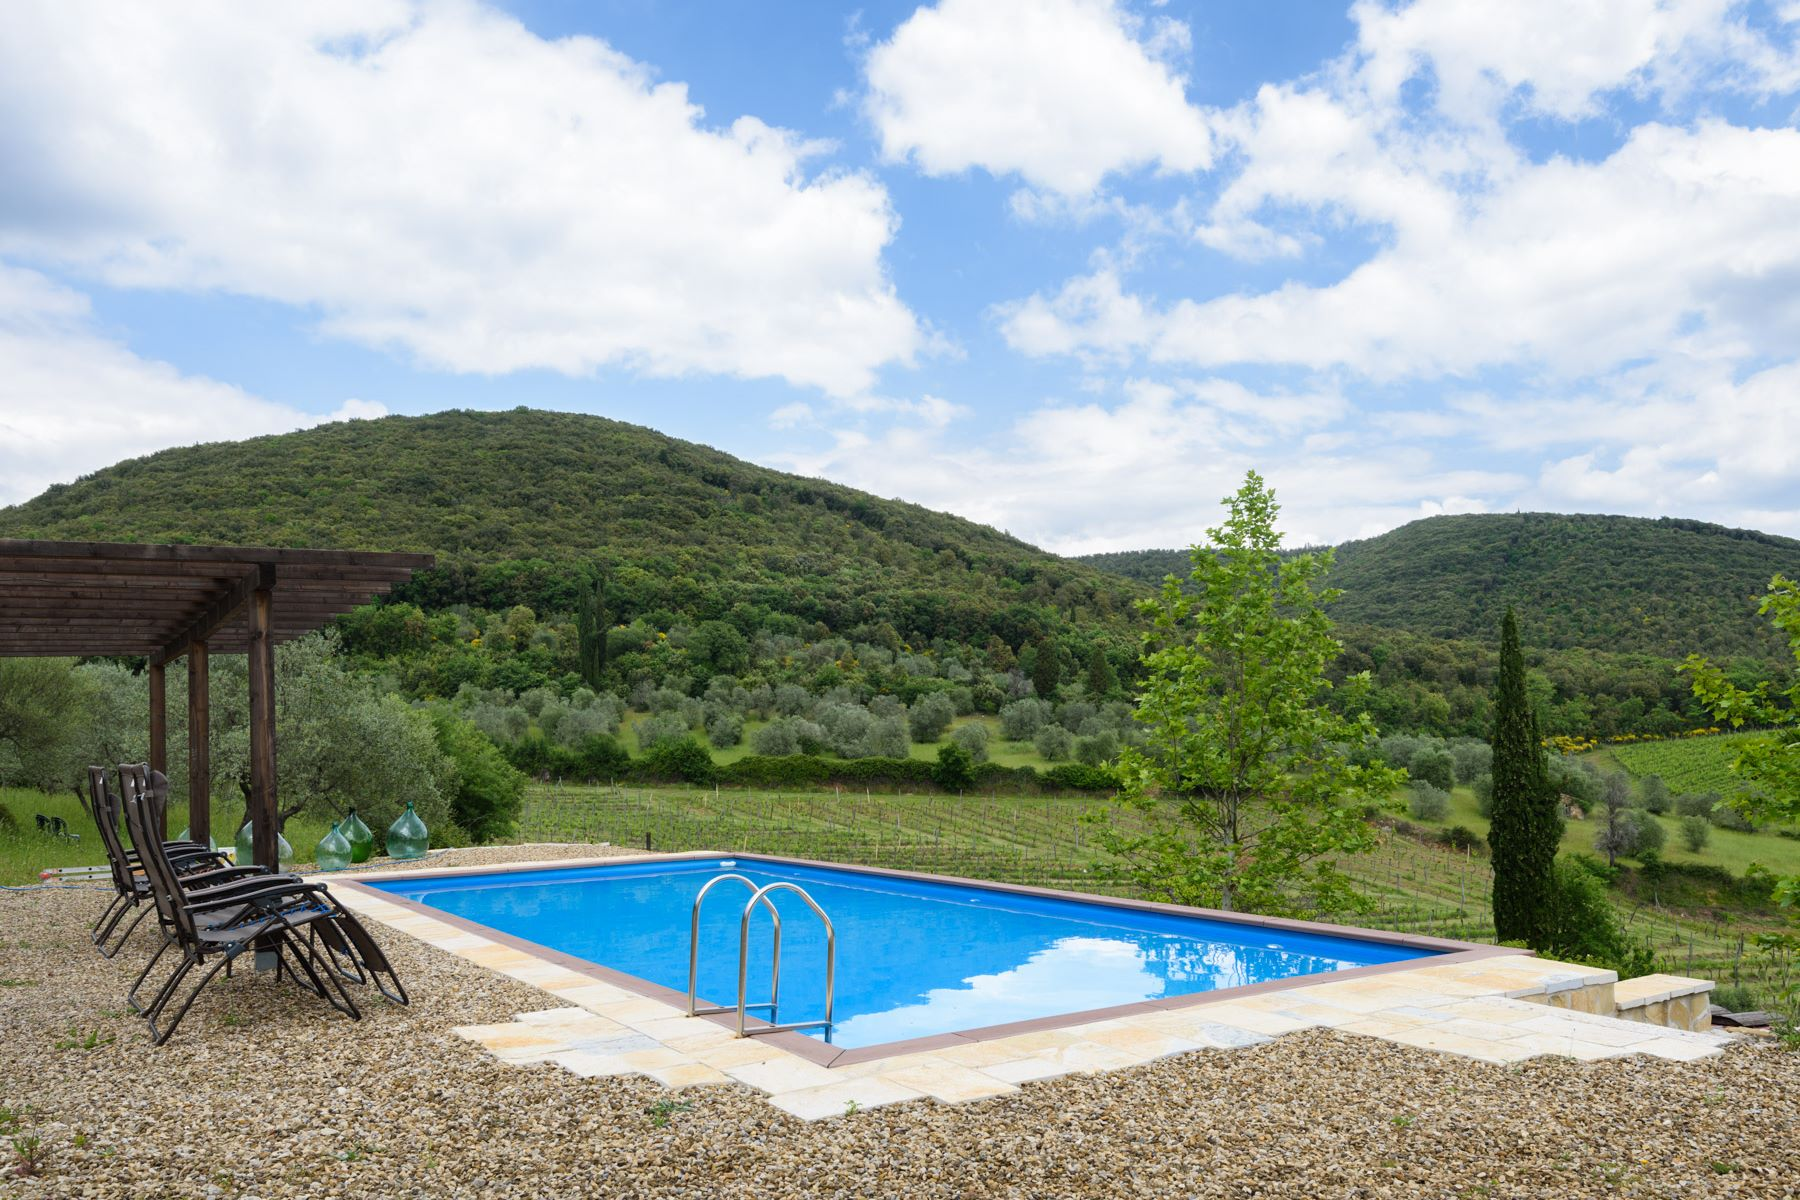 Single Family Home for Sale at Wonderful stone villa with magnificent views of Chianti Castelnuovo Berardenga, Siena Italy